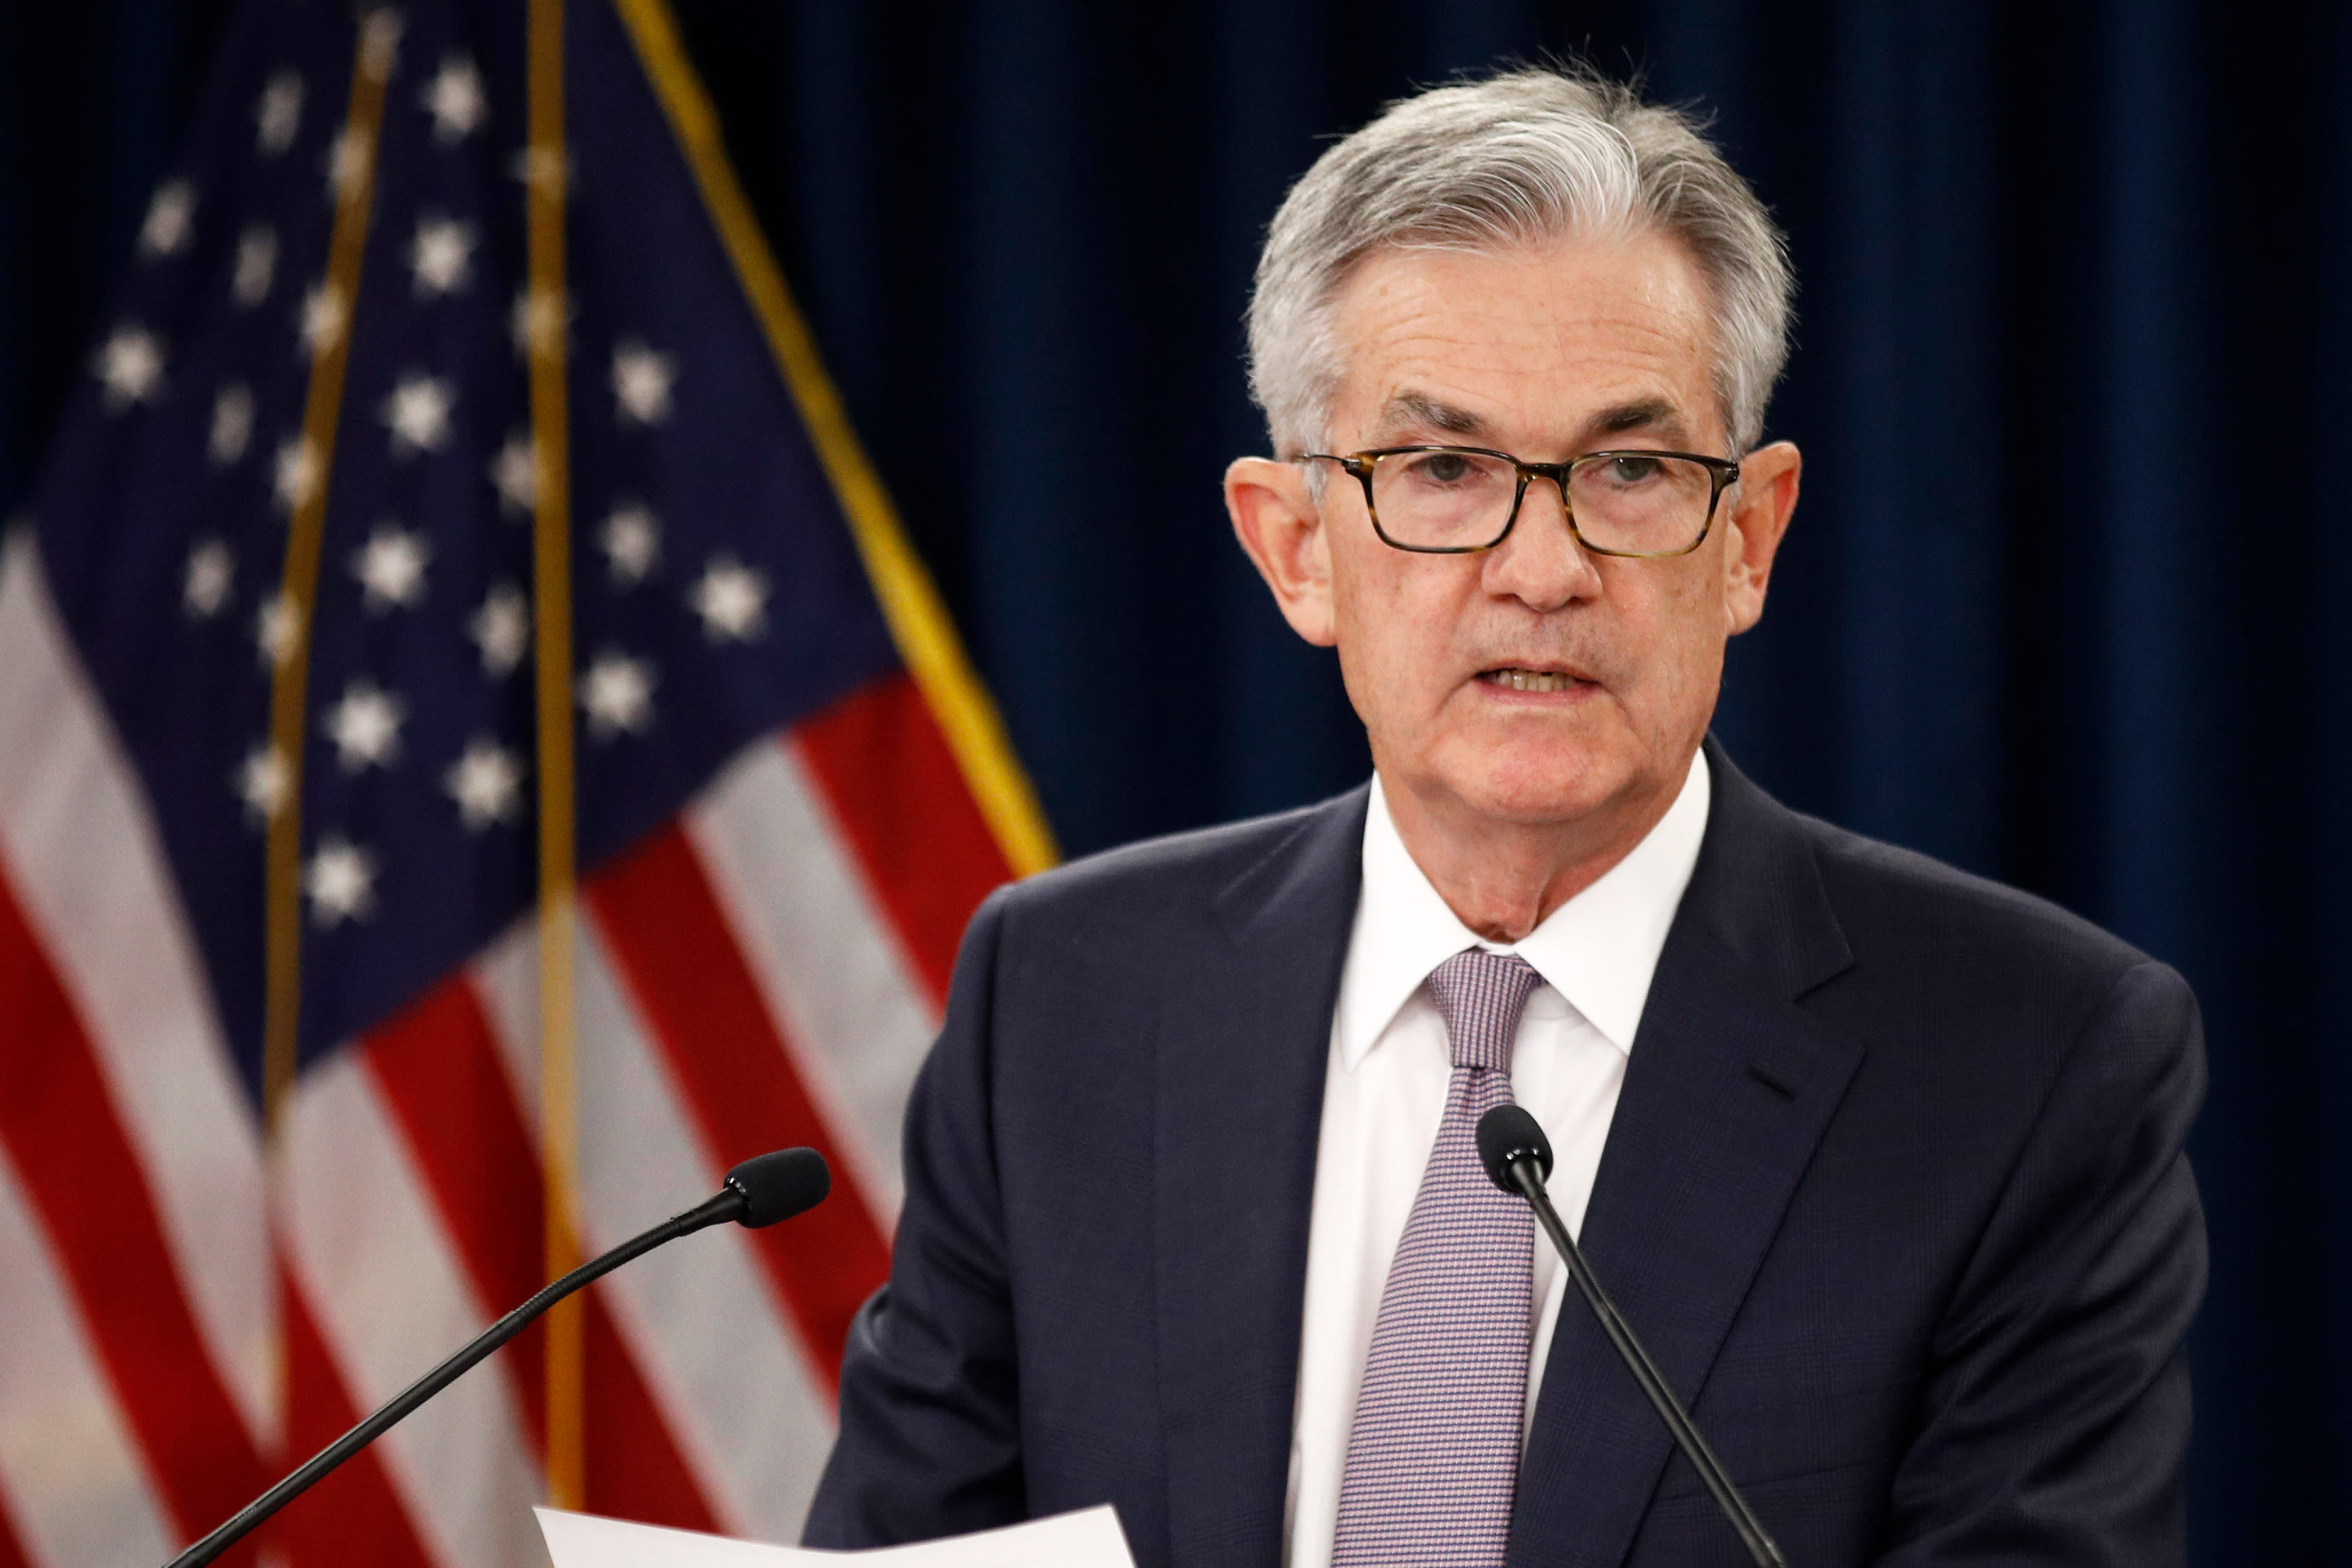 Interest rates cut by quarter point; FOMC divided on next steps